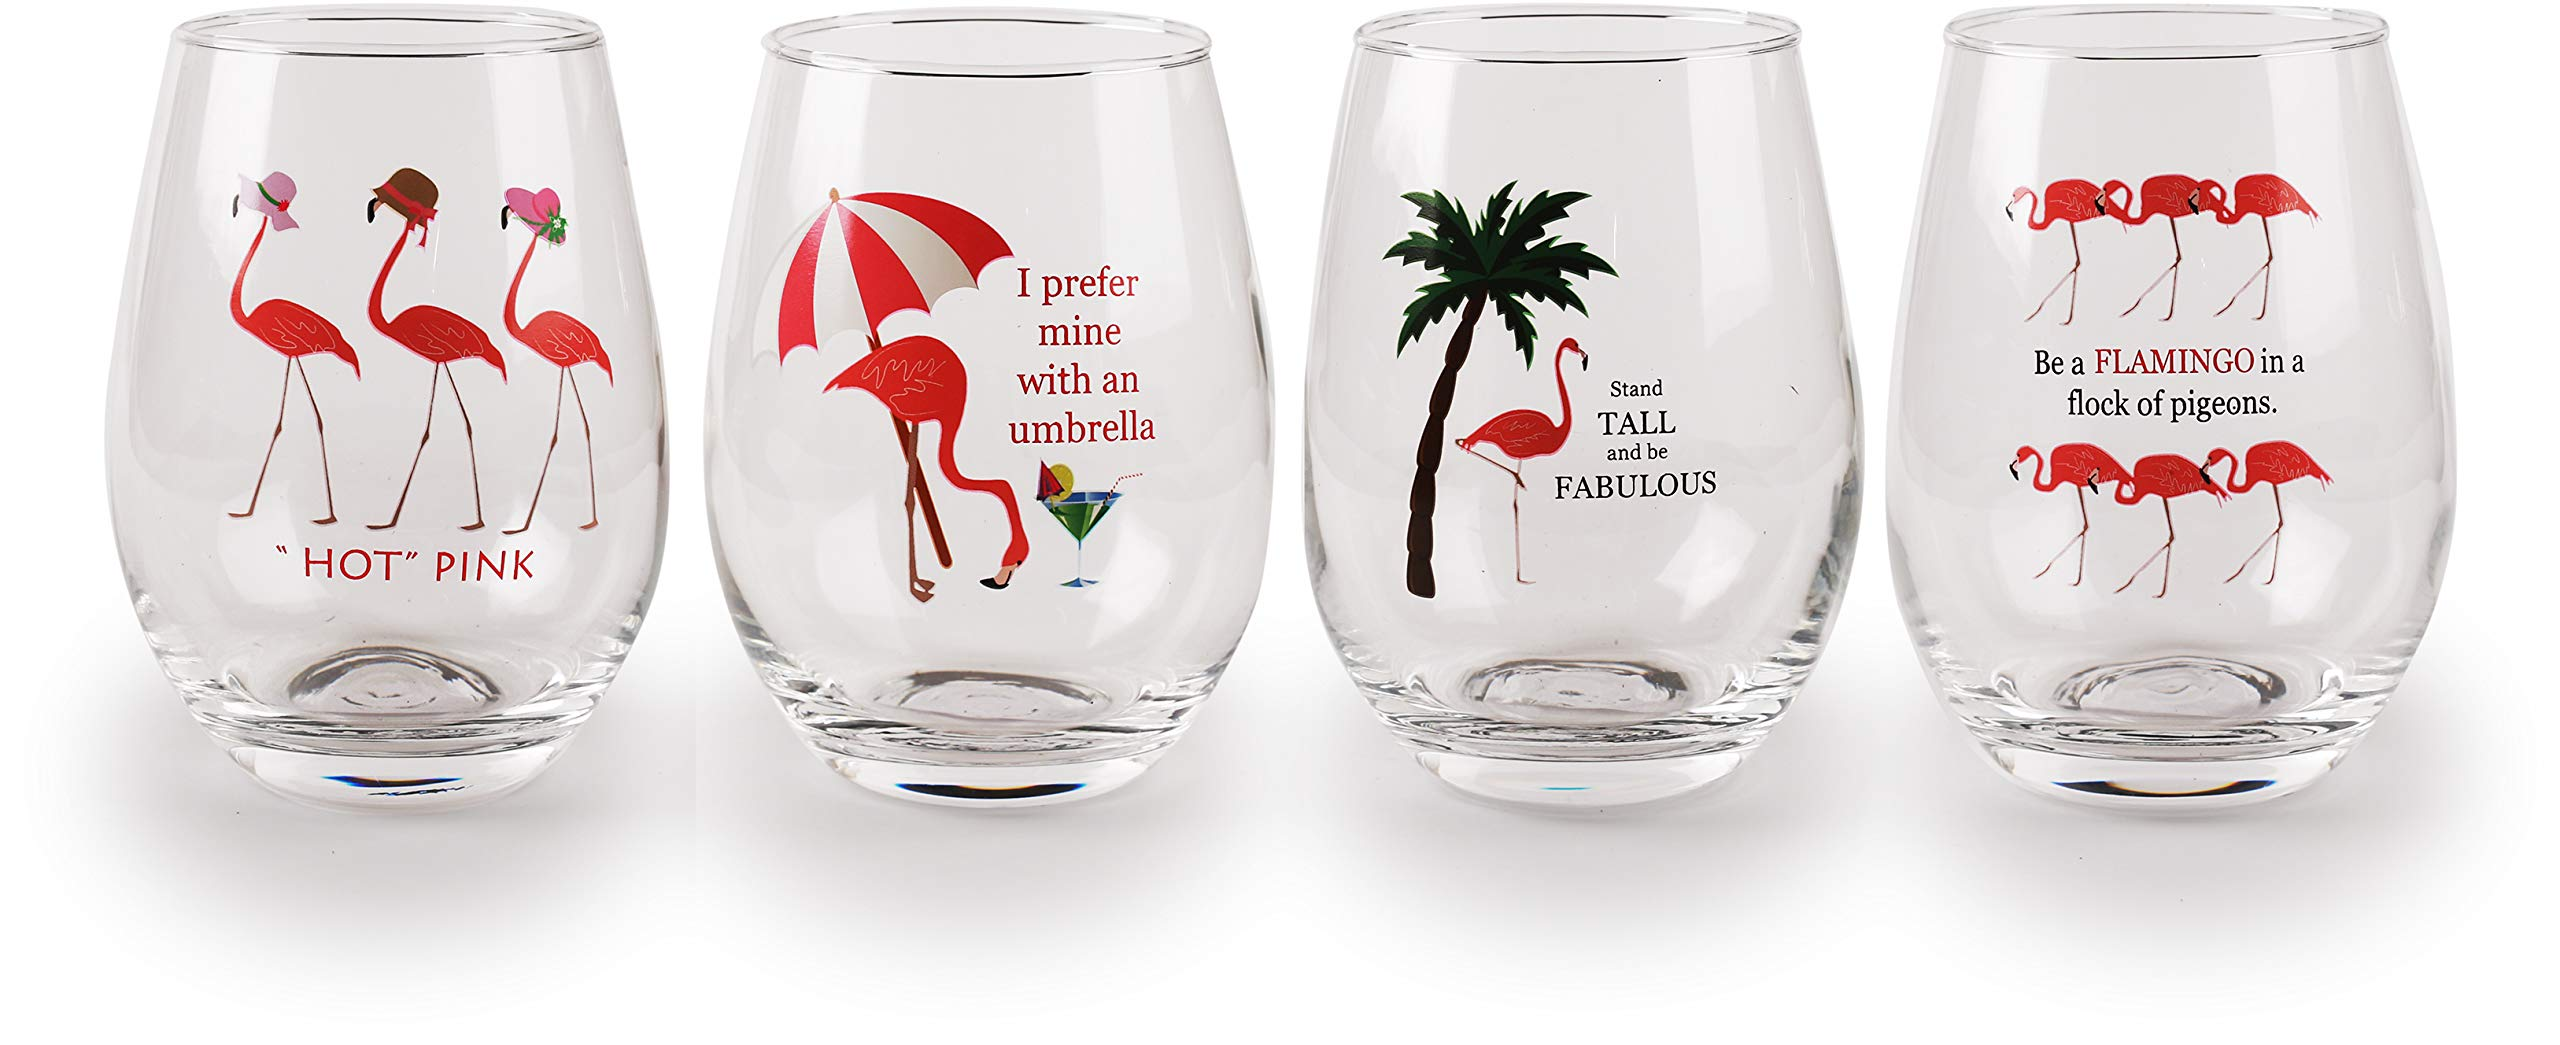 Circleware Flamingo Stemless Wine Glasses with Decal, Set of 4, Home & Kitchen Funny Party Entertainment Dining Glassware for Water, Beer, Juice, Ice Tea, Whiskey Bar Beverage Cup Gifts, 18.5 oz,